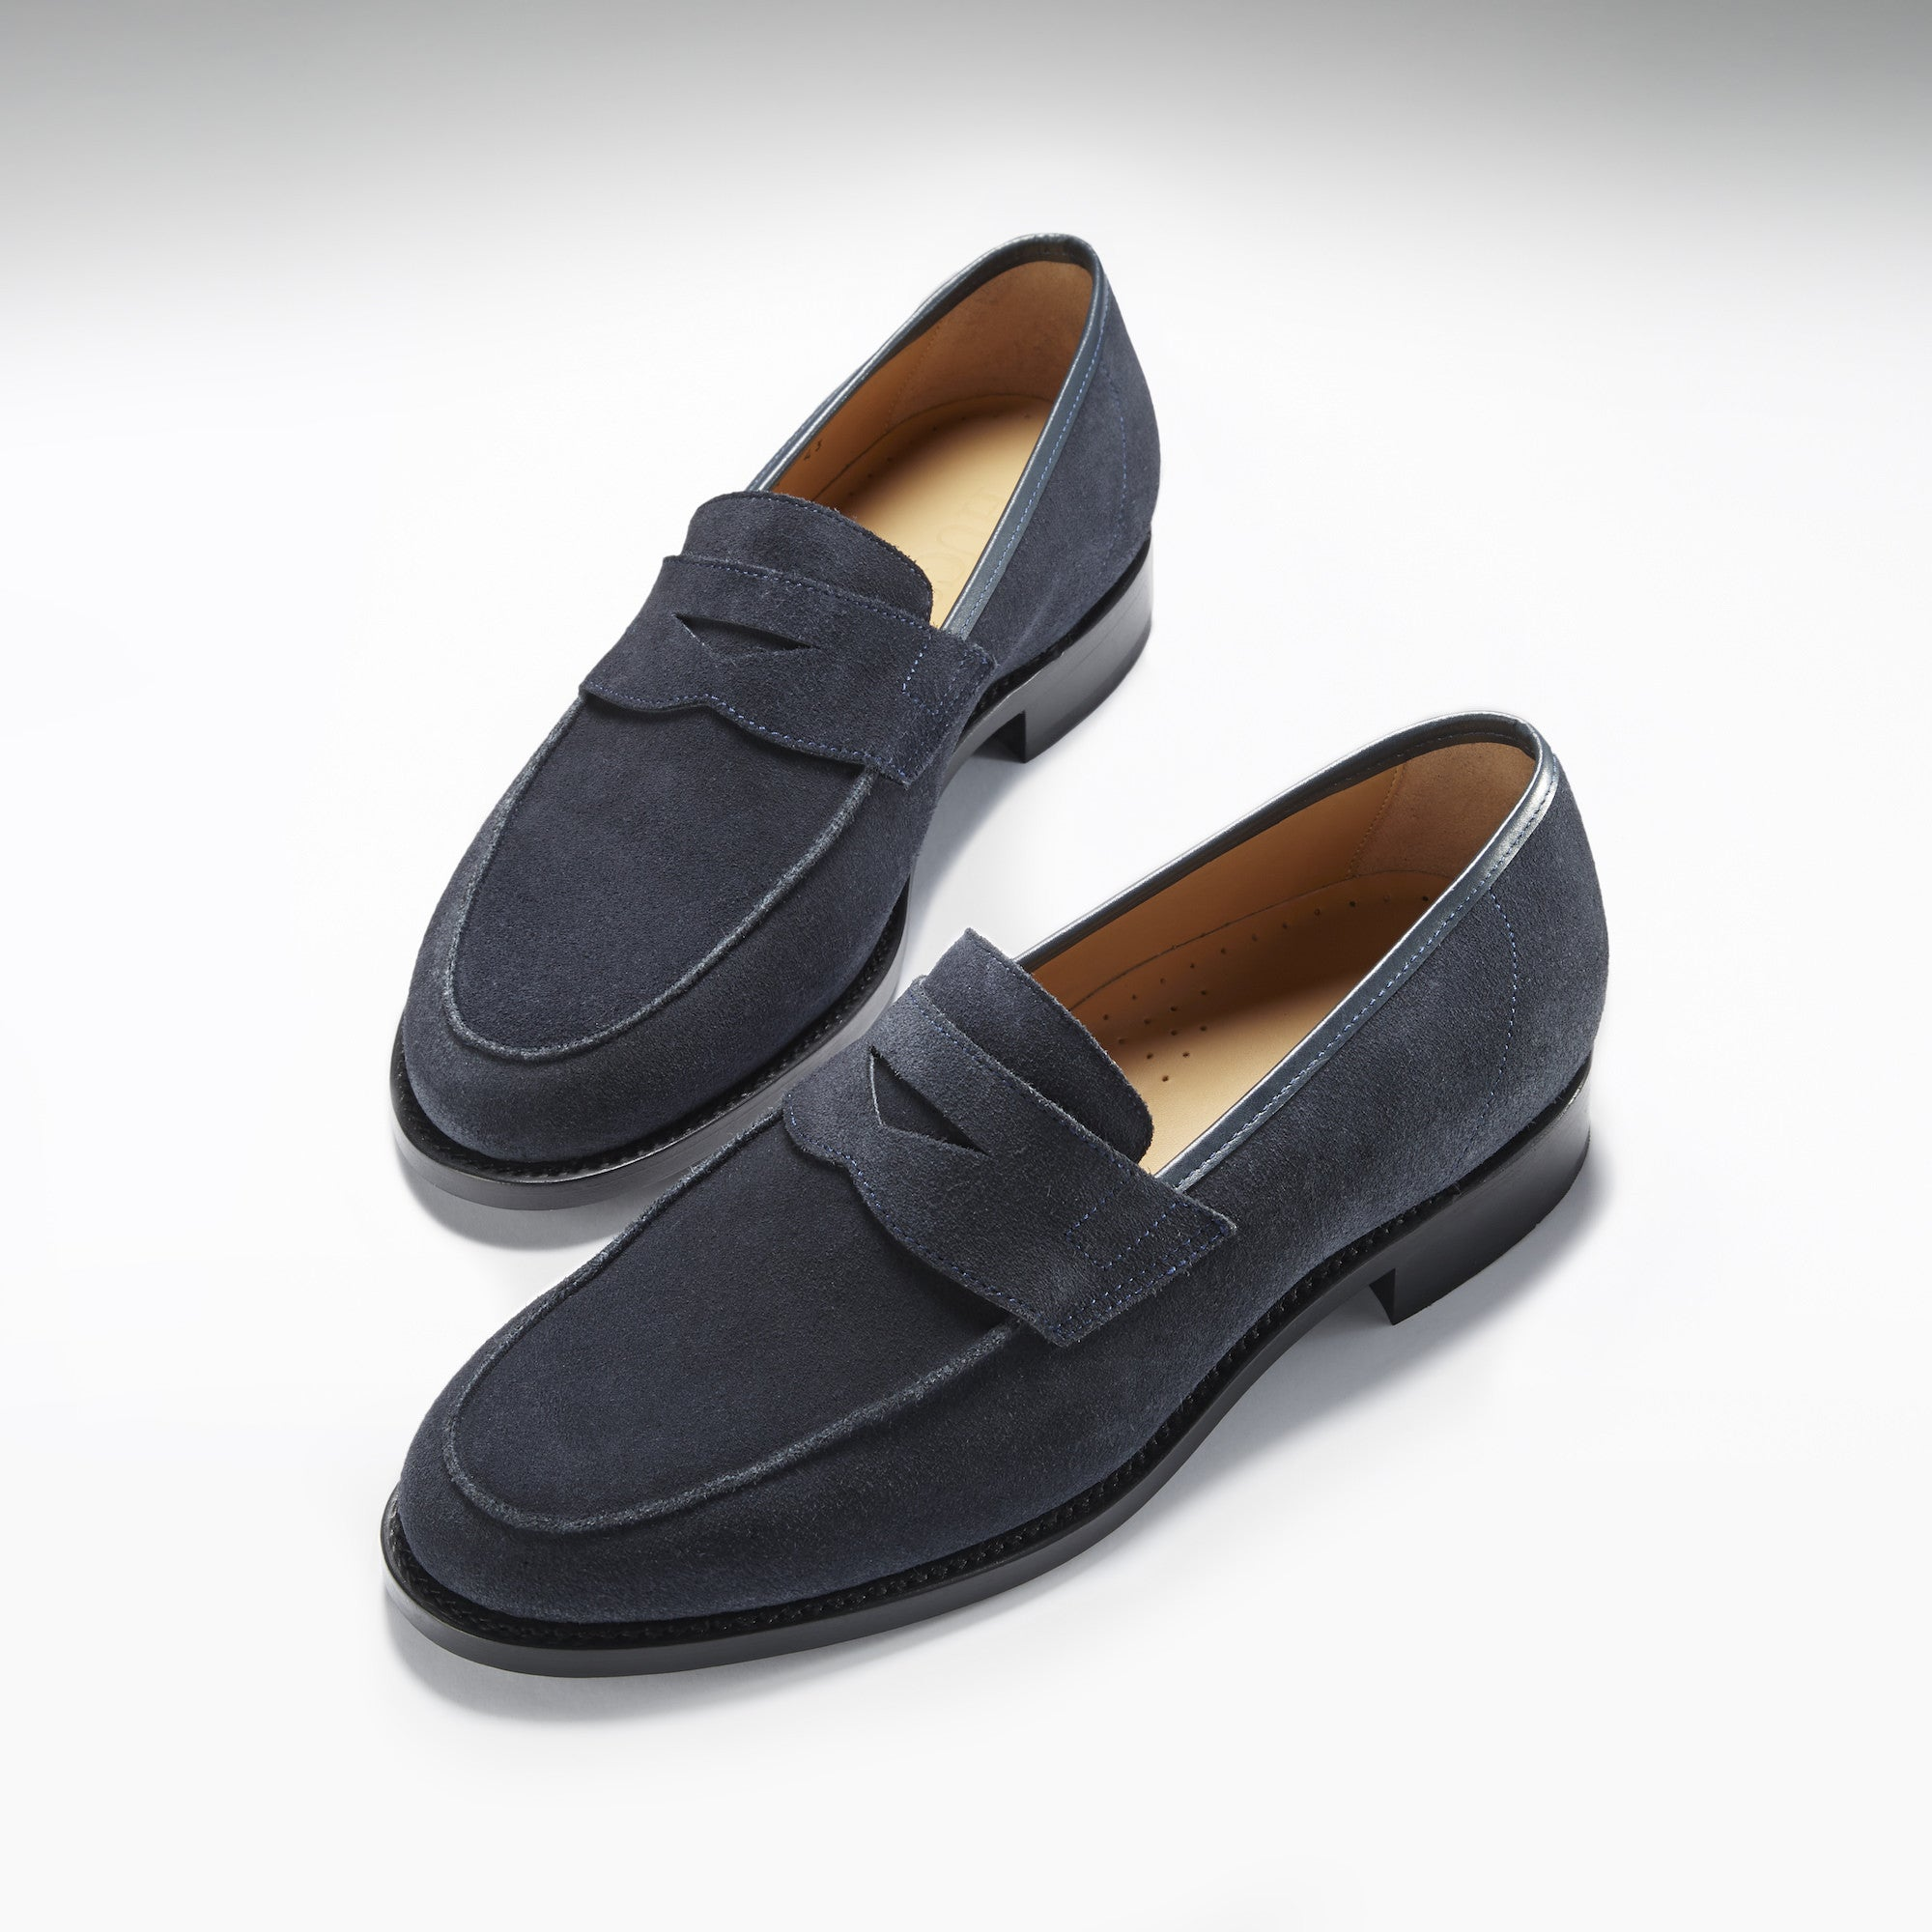 0635e3c6838 Navy Blue Suede Loafers